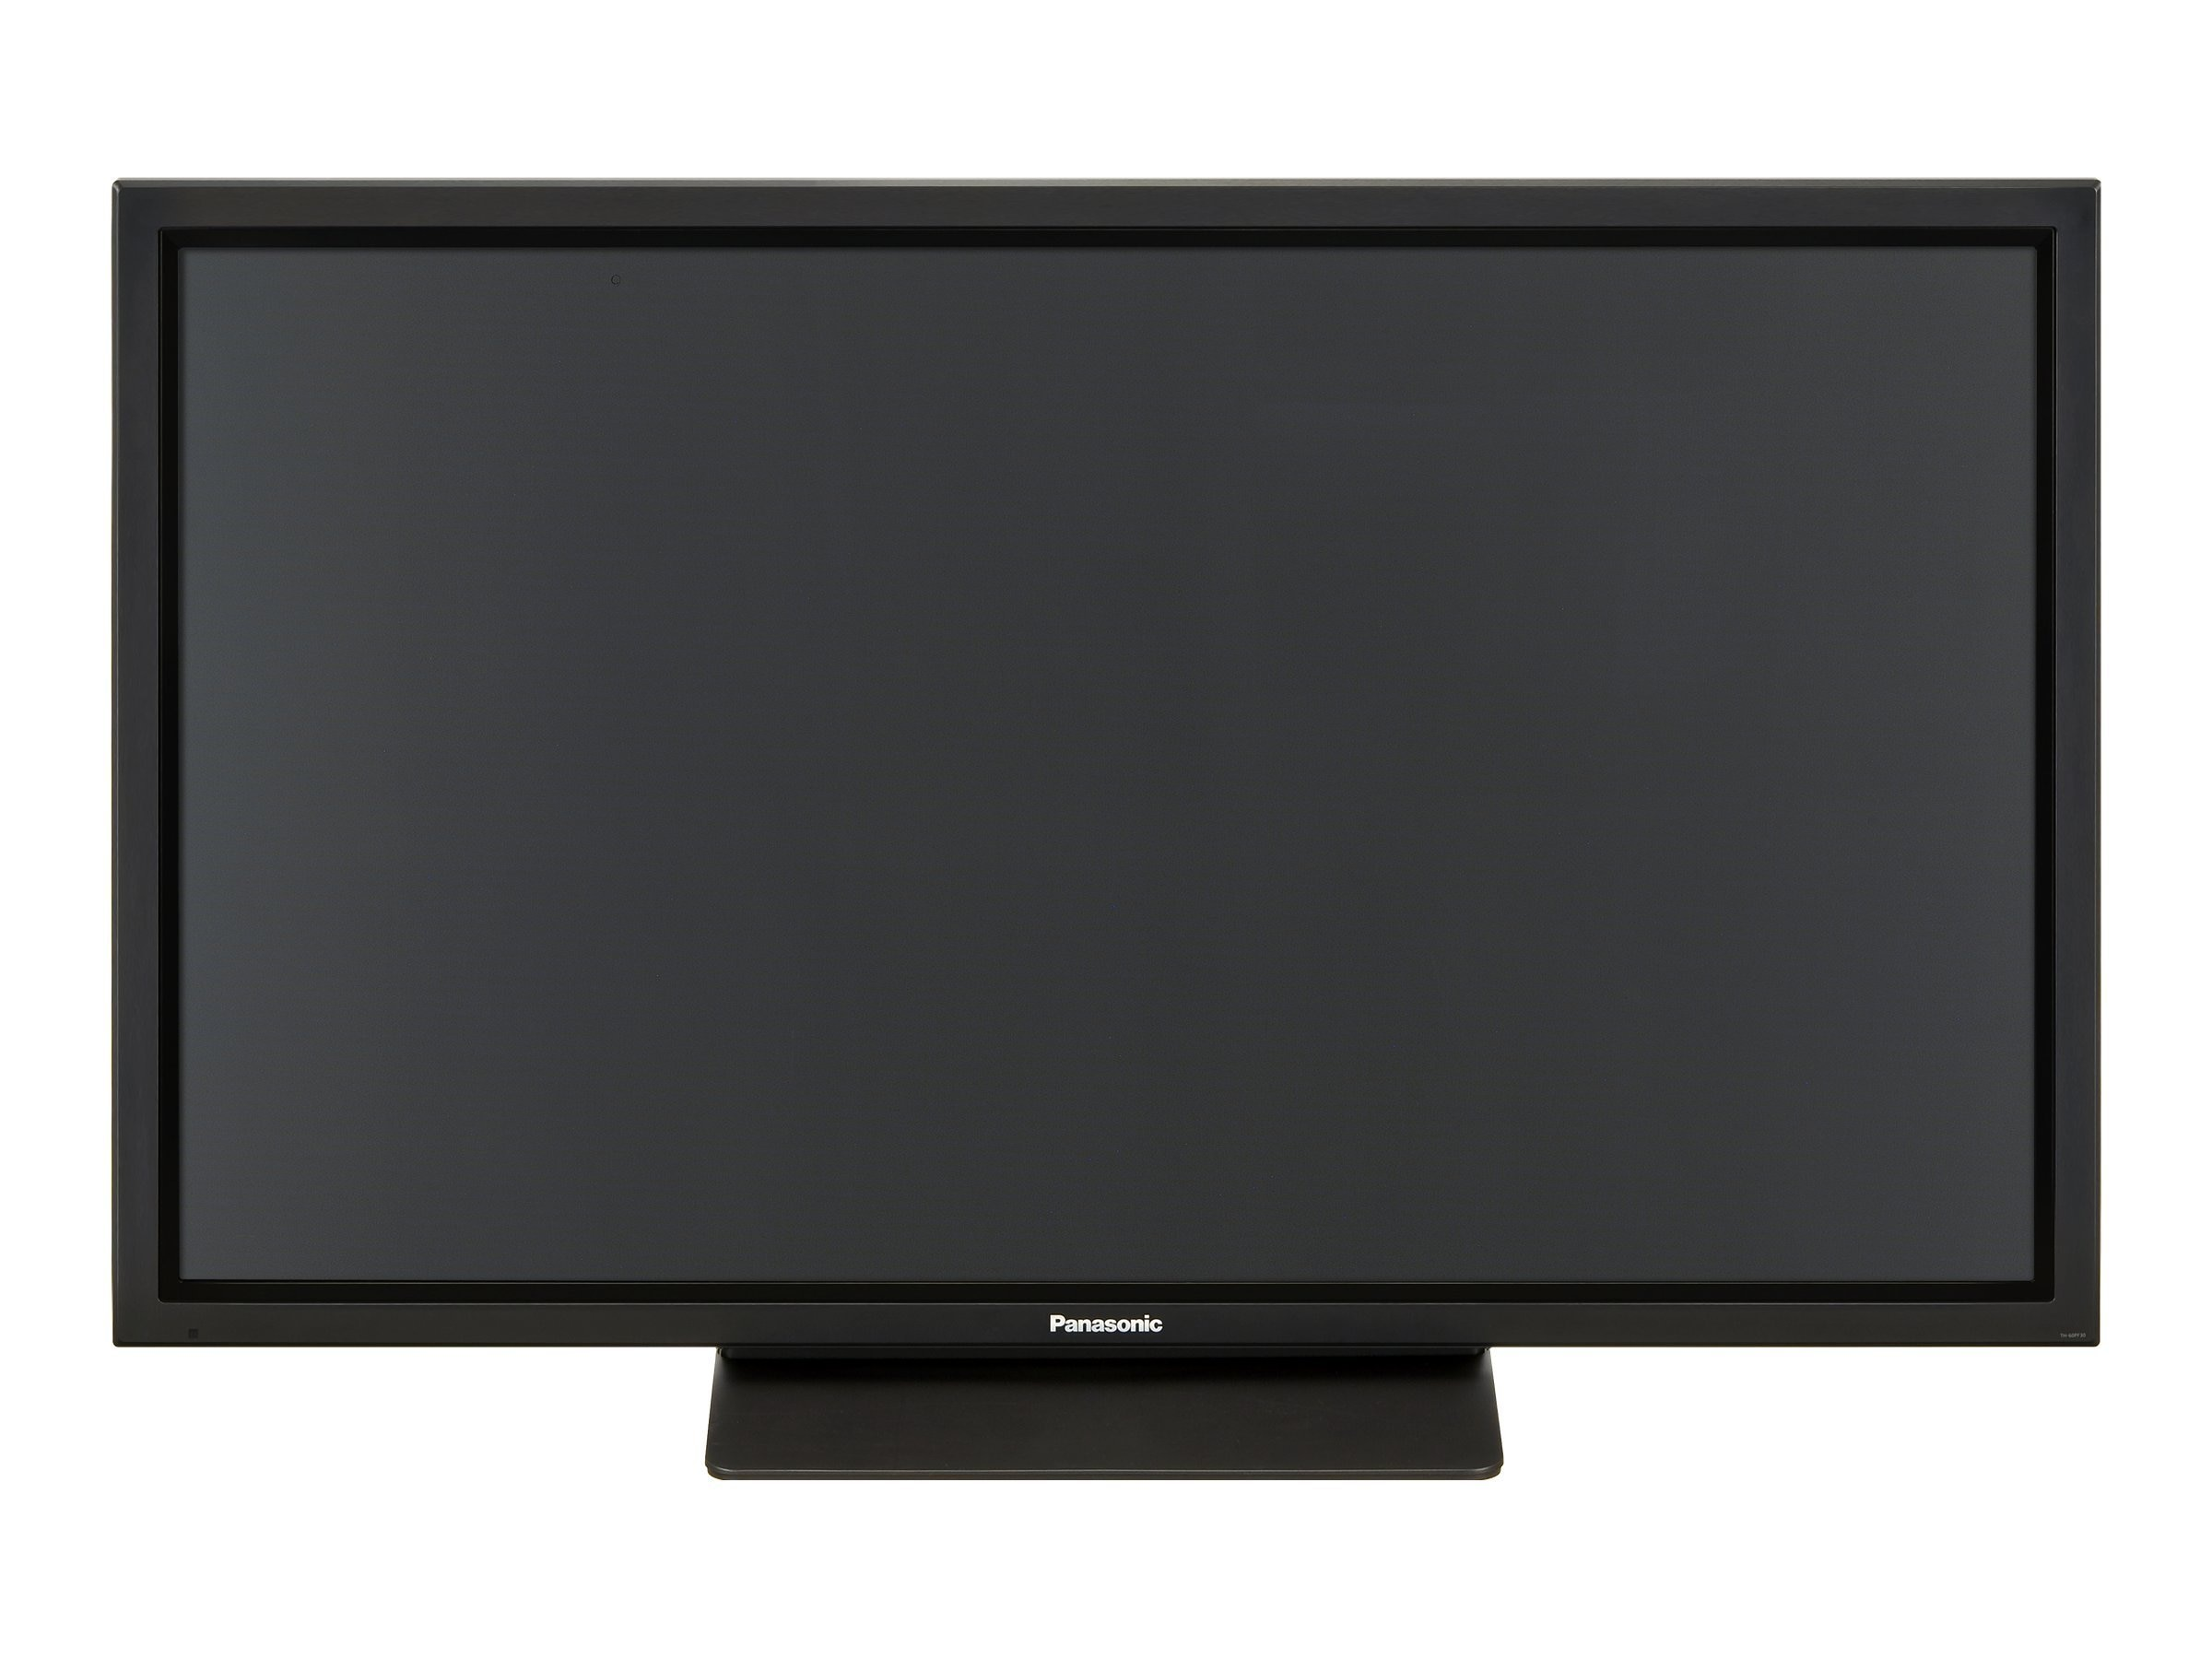 Panasonic 60 PF30U 3D-Ready Plasma Display, 1080p, Black